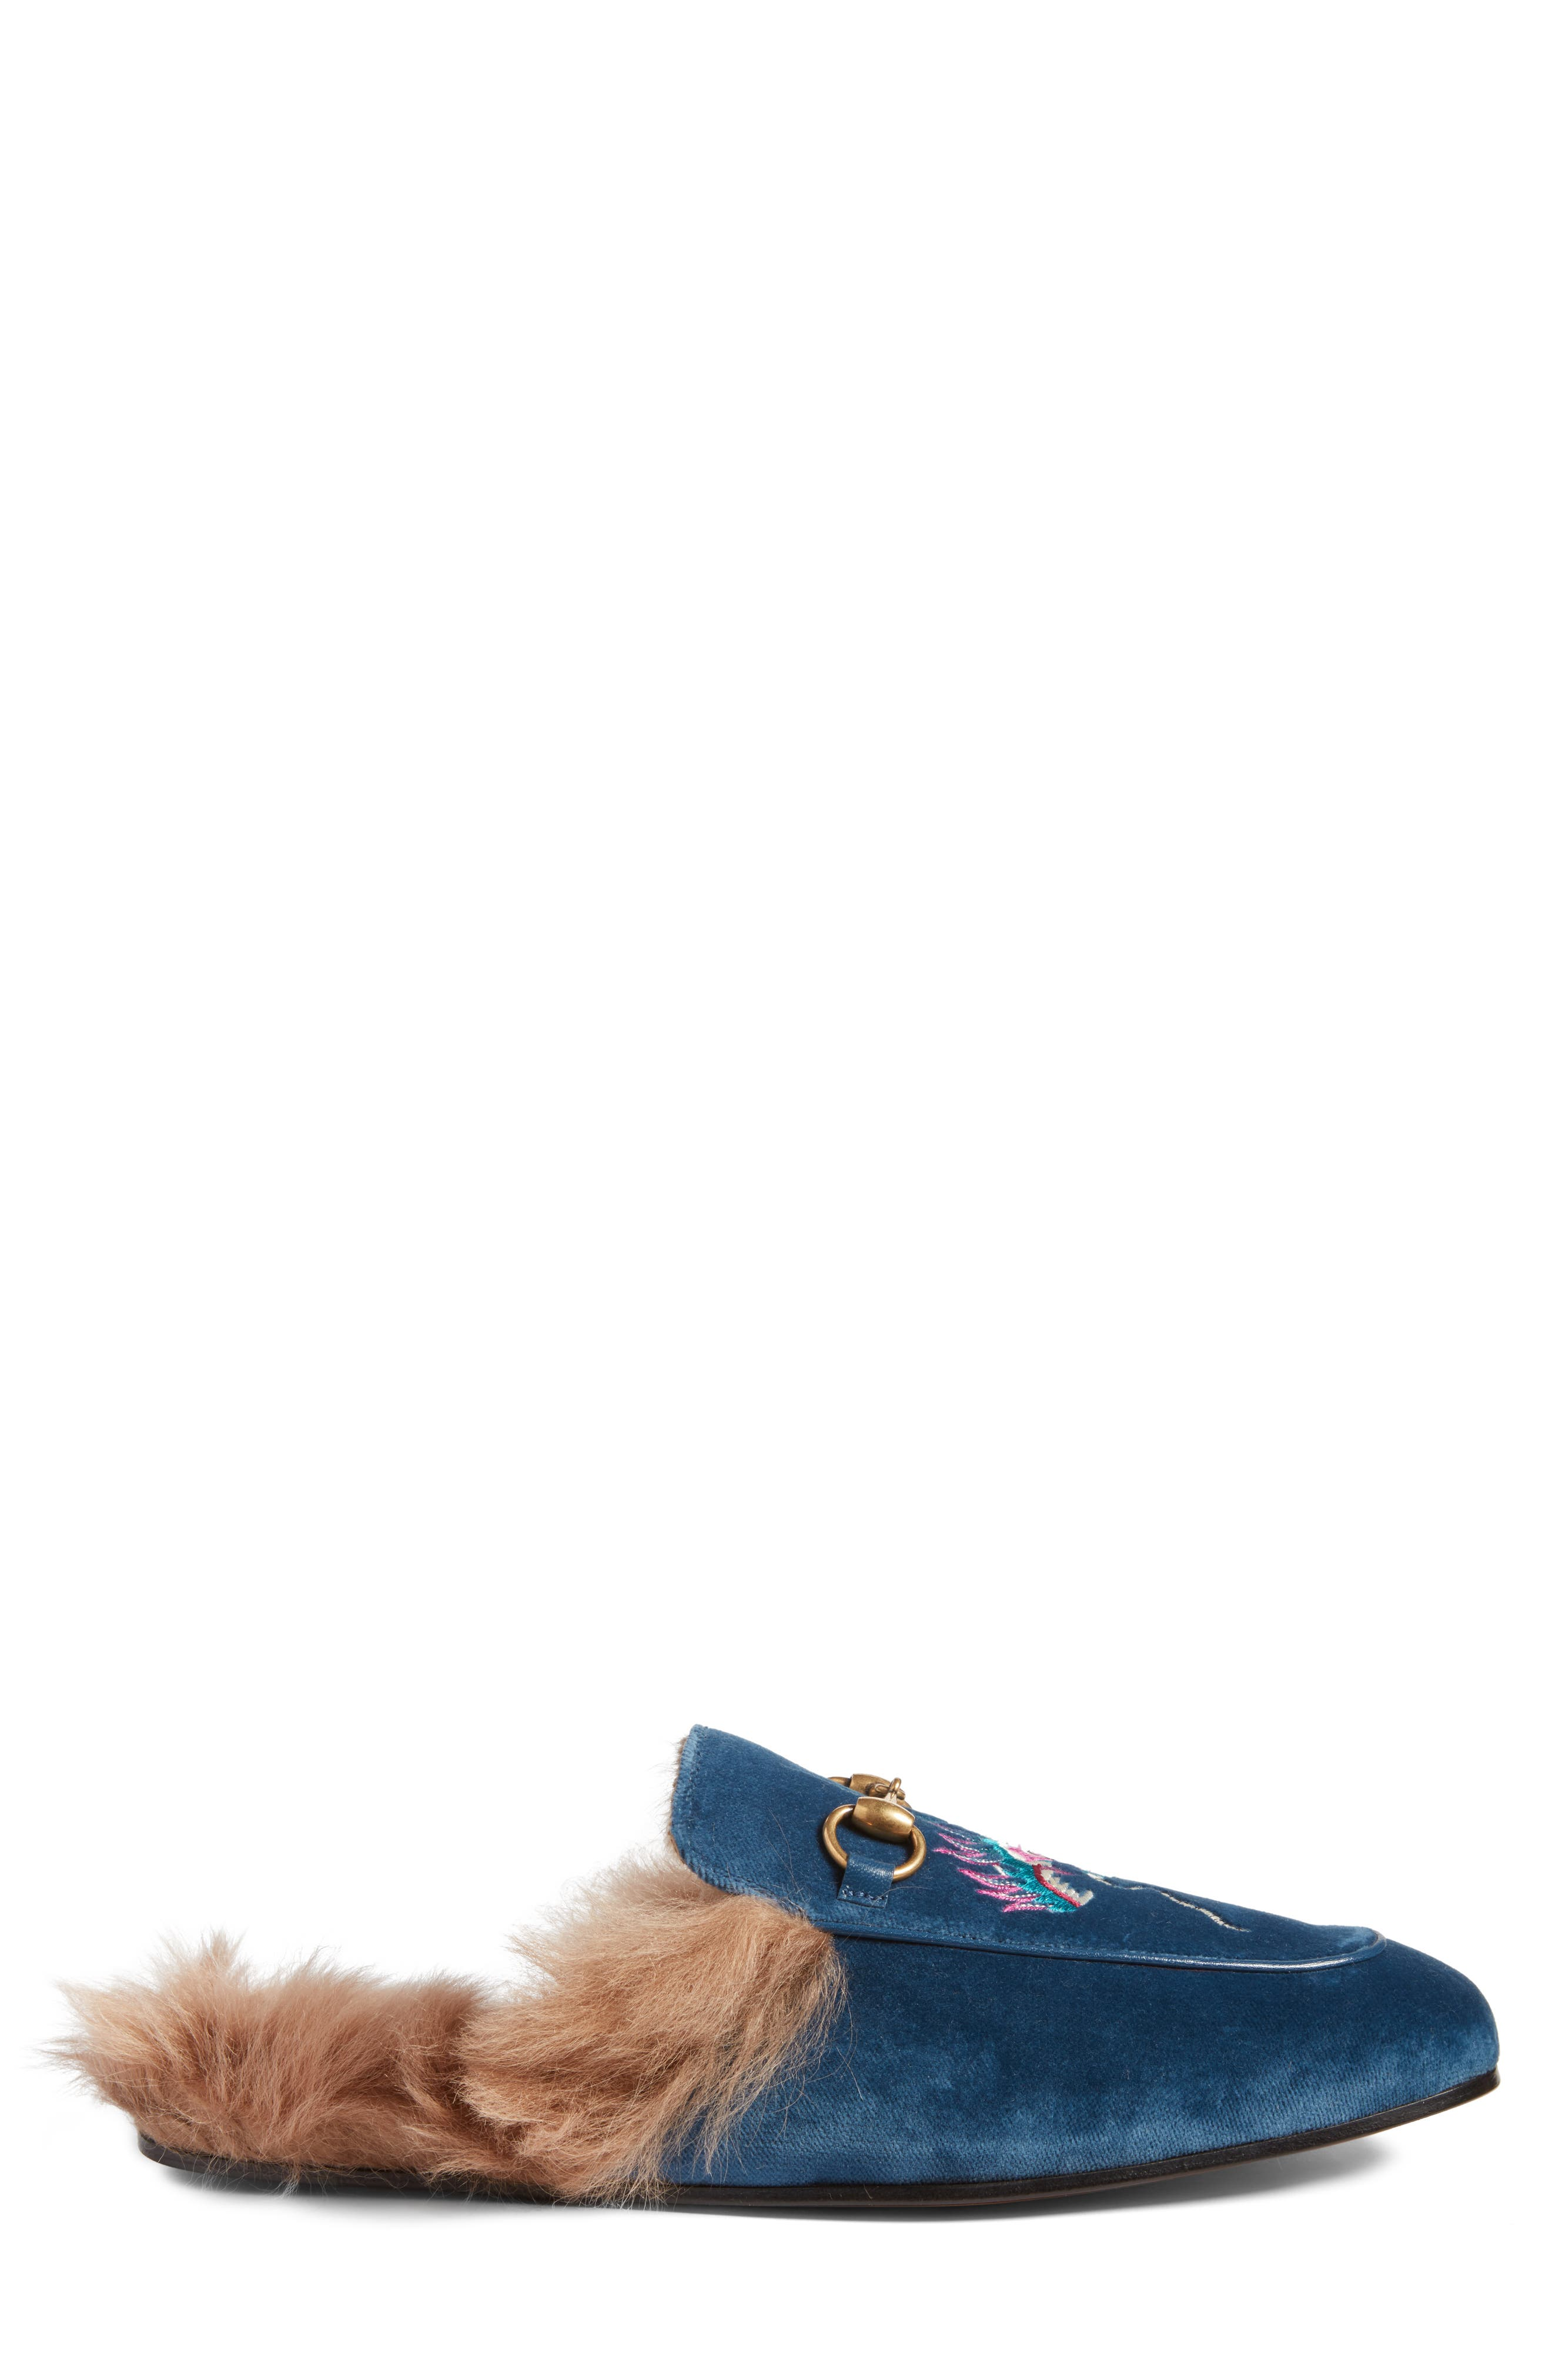 Princetown Genuine Shearling Lined Mule Loafer,                             Alternate thumbnail 3, color,                             Cobalt Multi